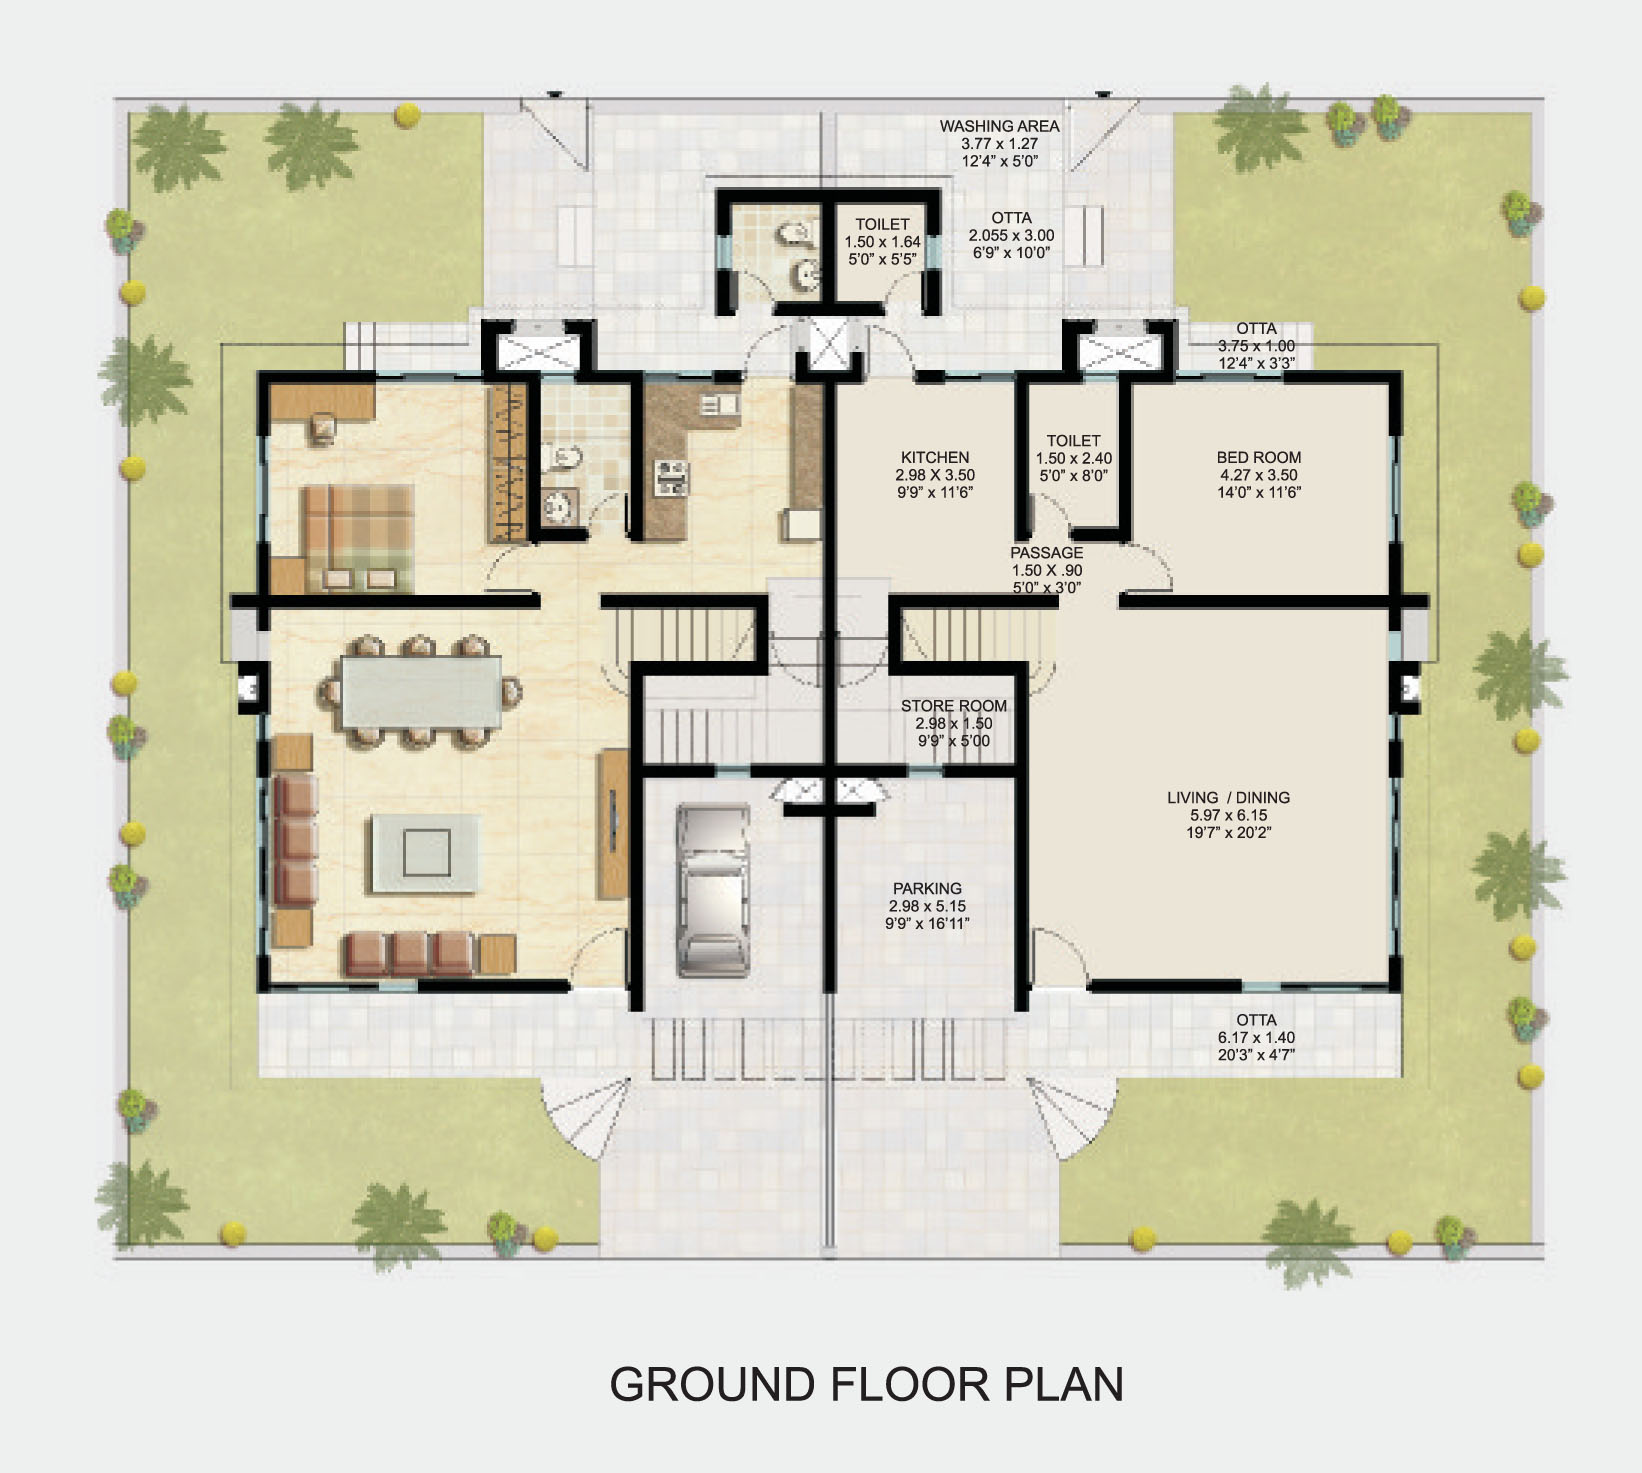 Viva pune floor plans pune india Home building plans